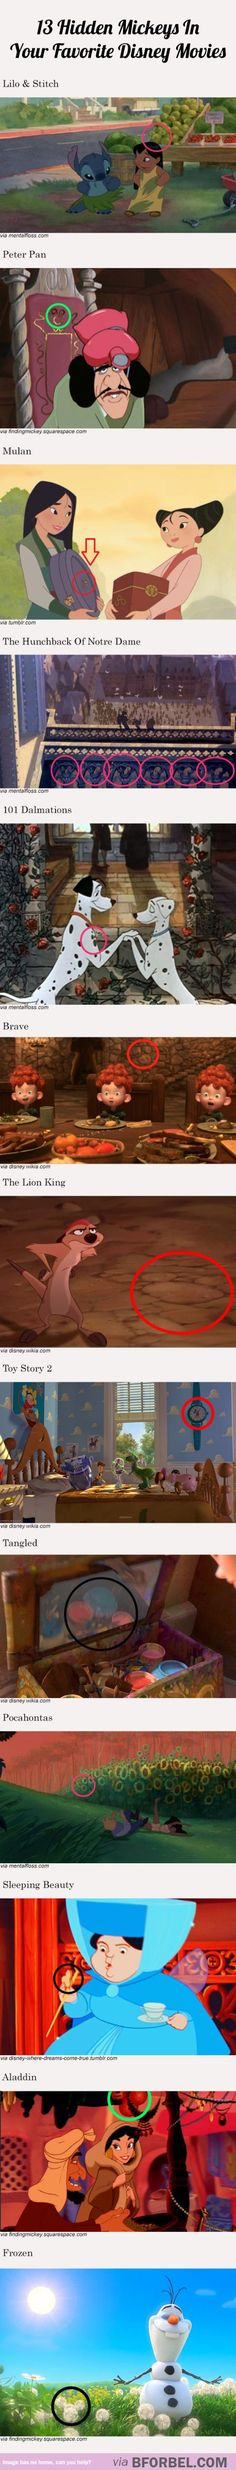 13 Hidden Mickeys In Your Favorite Disney Movies…: